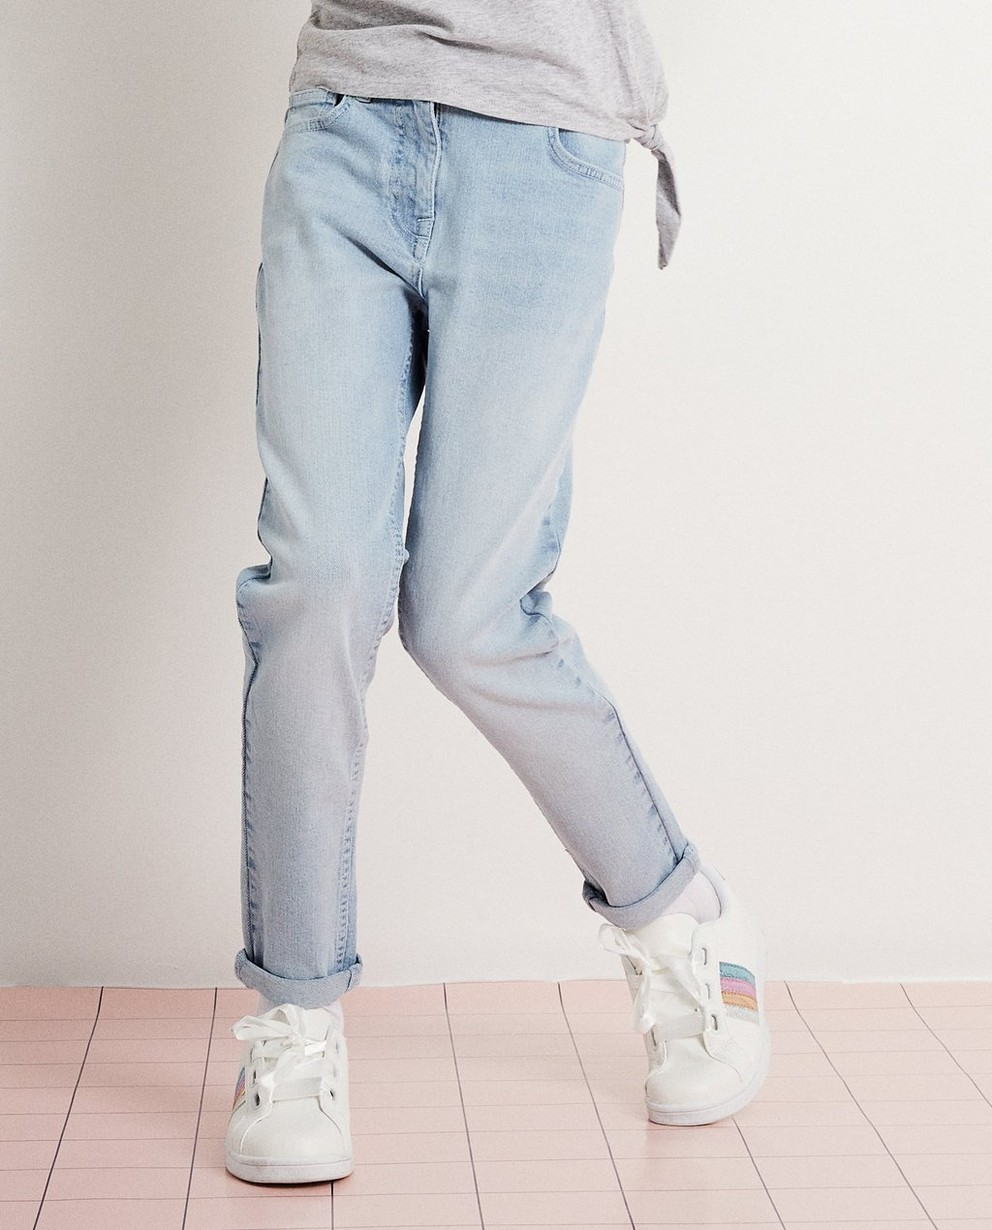 Jeans - BLL - Lichtblauwe stretchjeans